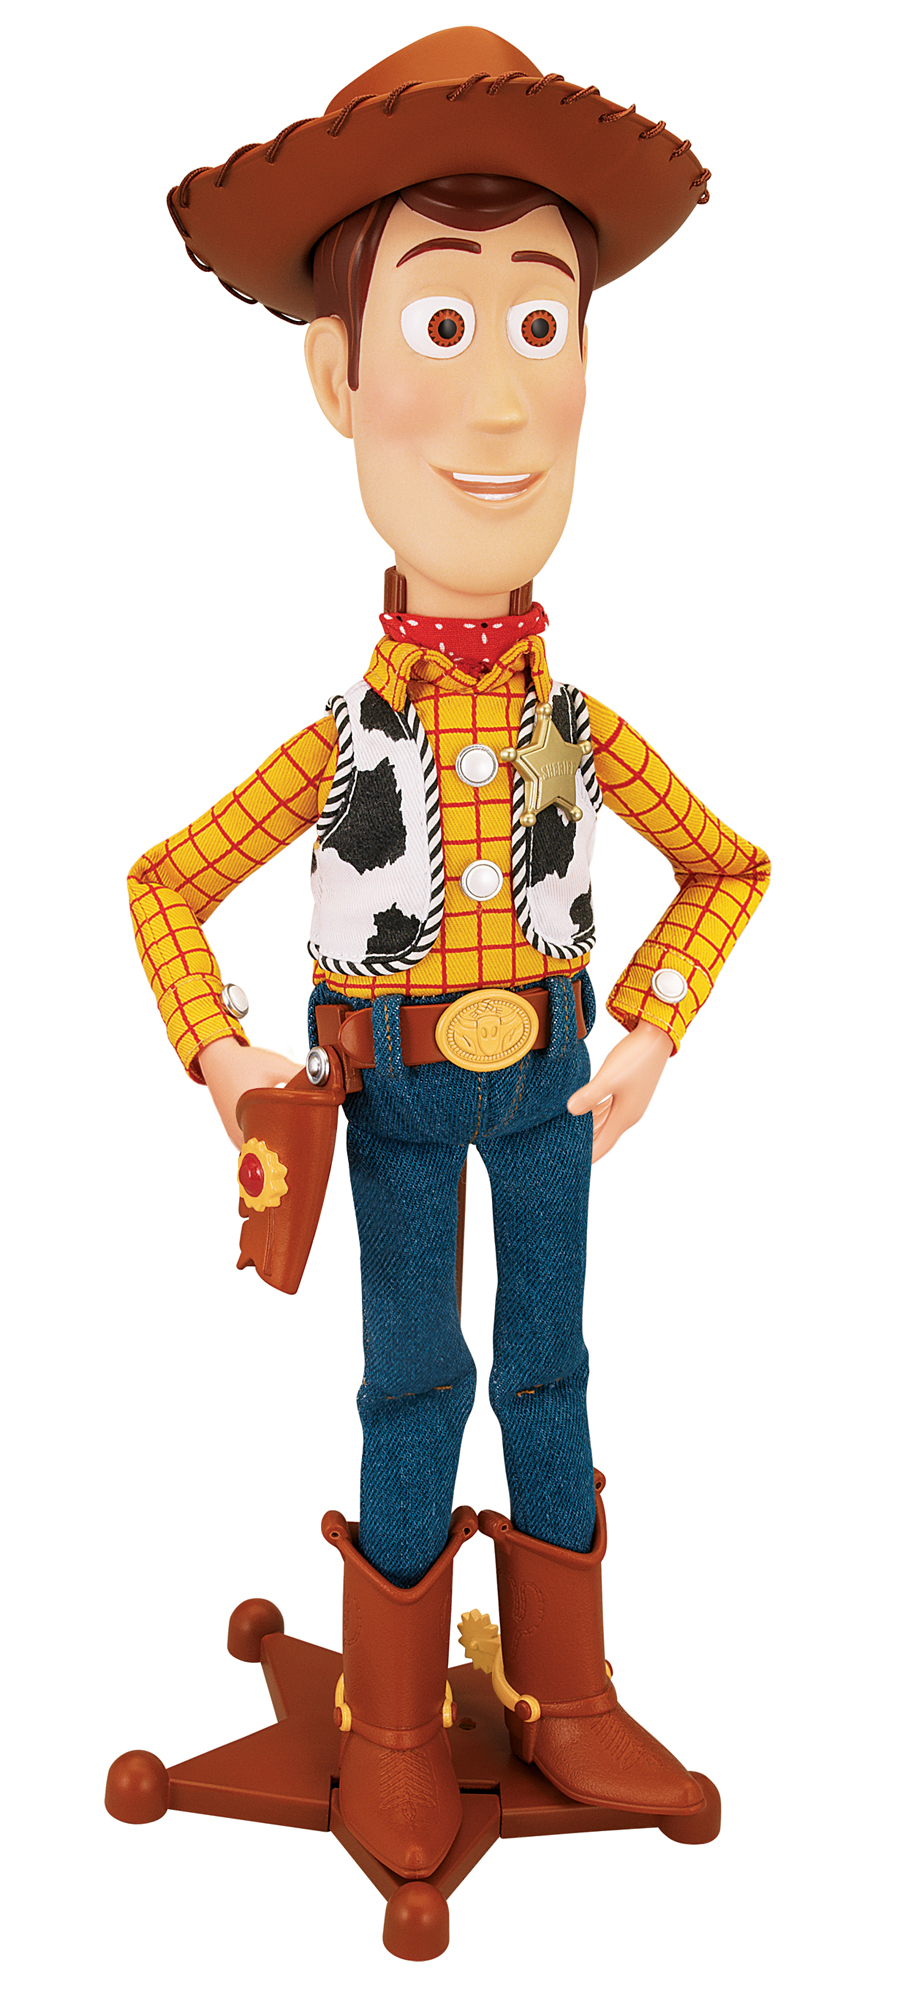 Toy Story Figures : Woody toy story merchandise wiki